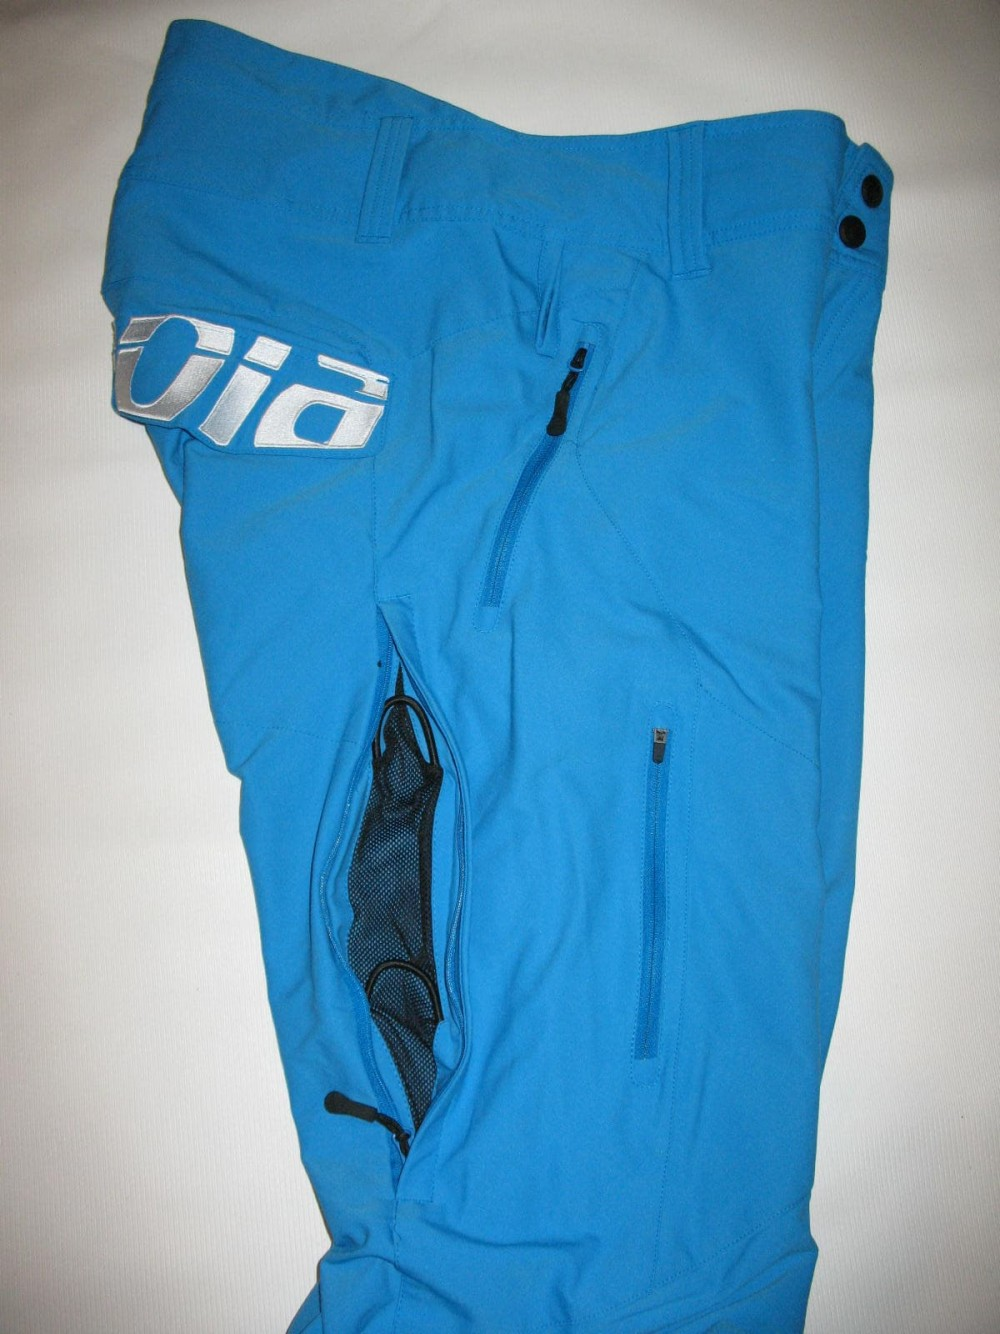 Велоштаны MALOJA 3xdry bike pants (размер M) - 3